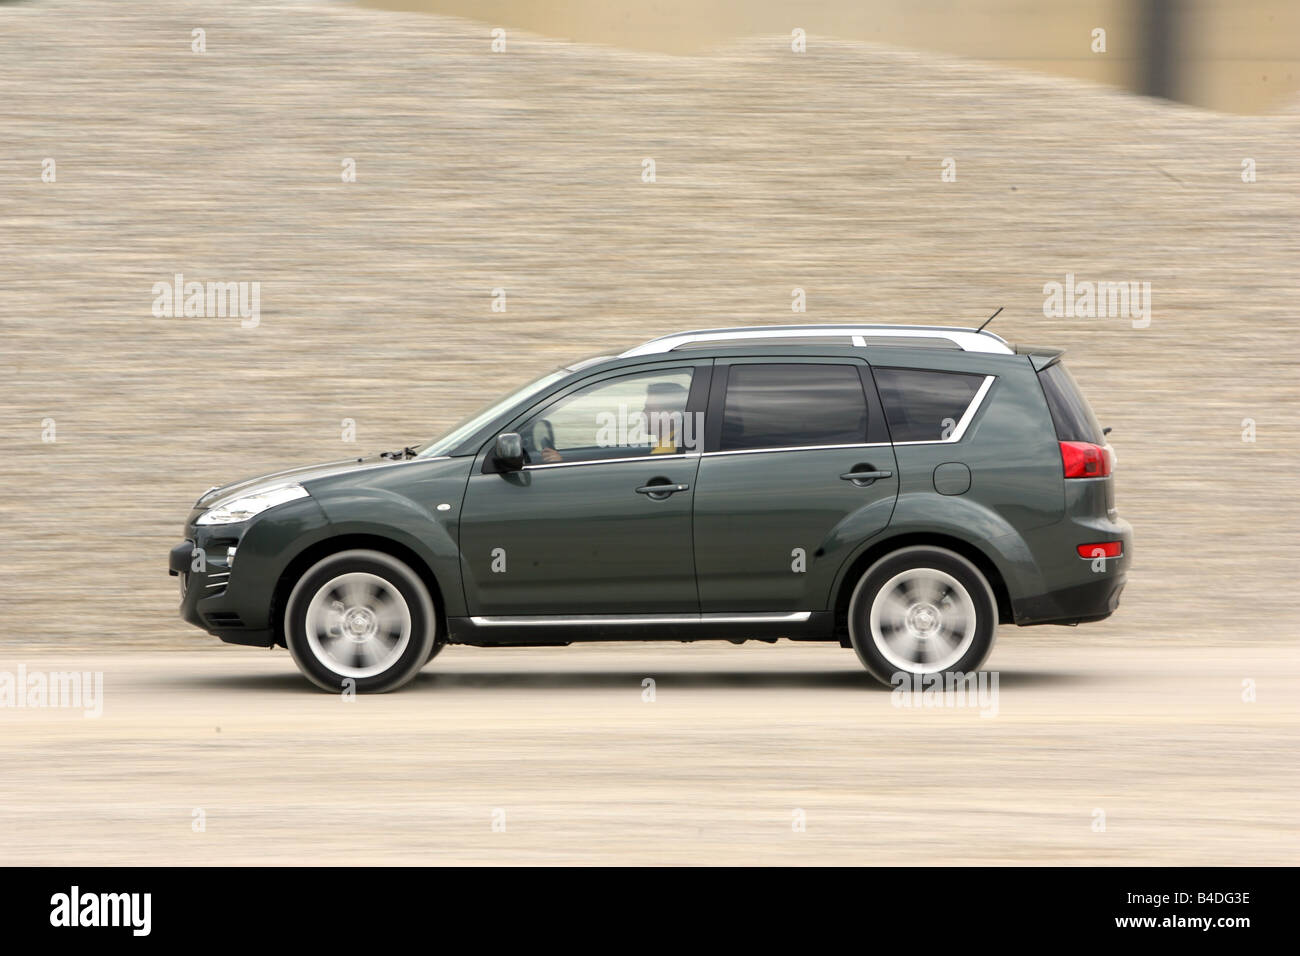 Peugeot 4007 HDi FAP 155 Platinum, model year 2007-, anthracite, driving, side view, offroad - Stock Image